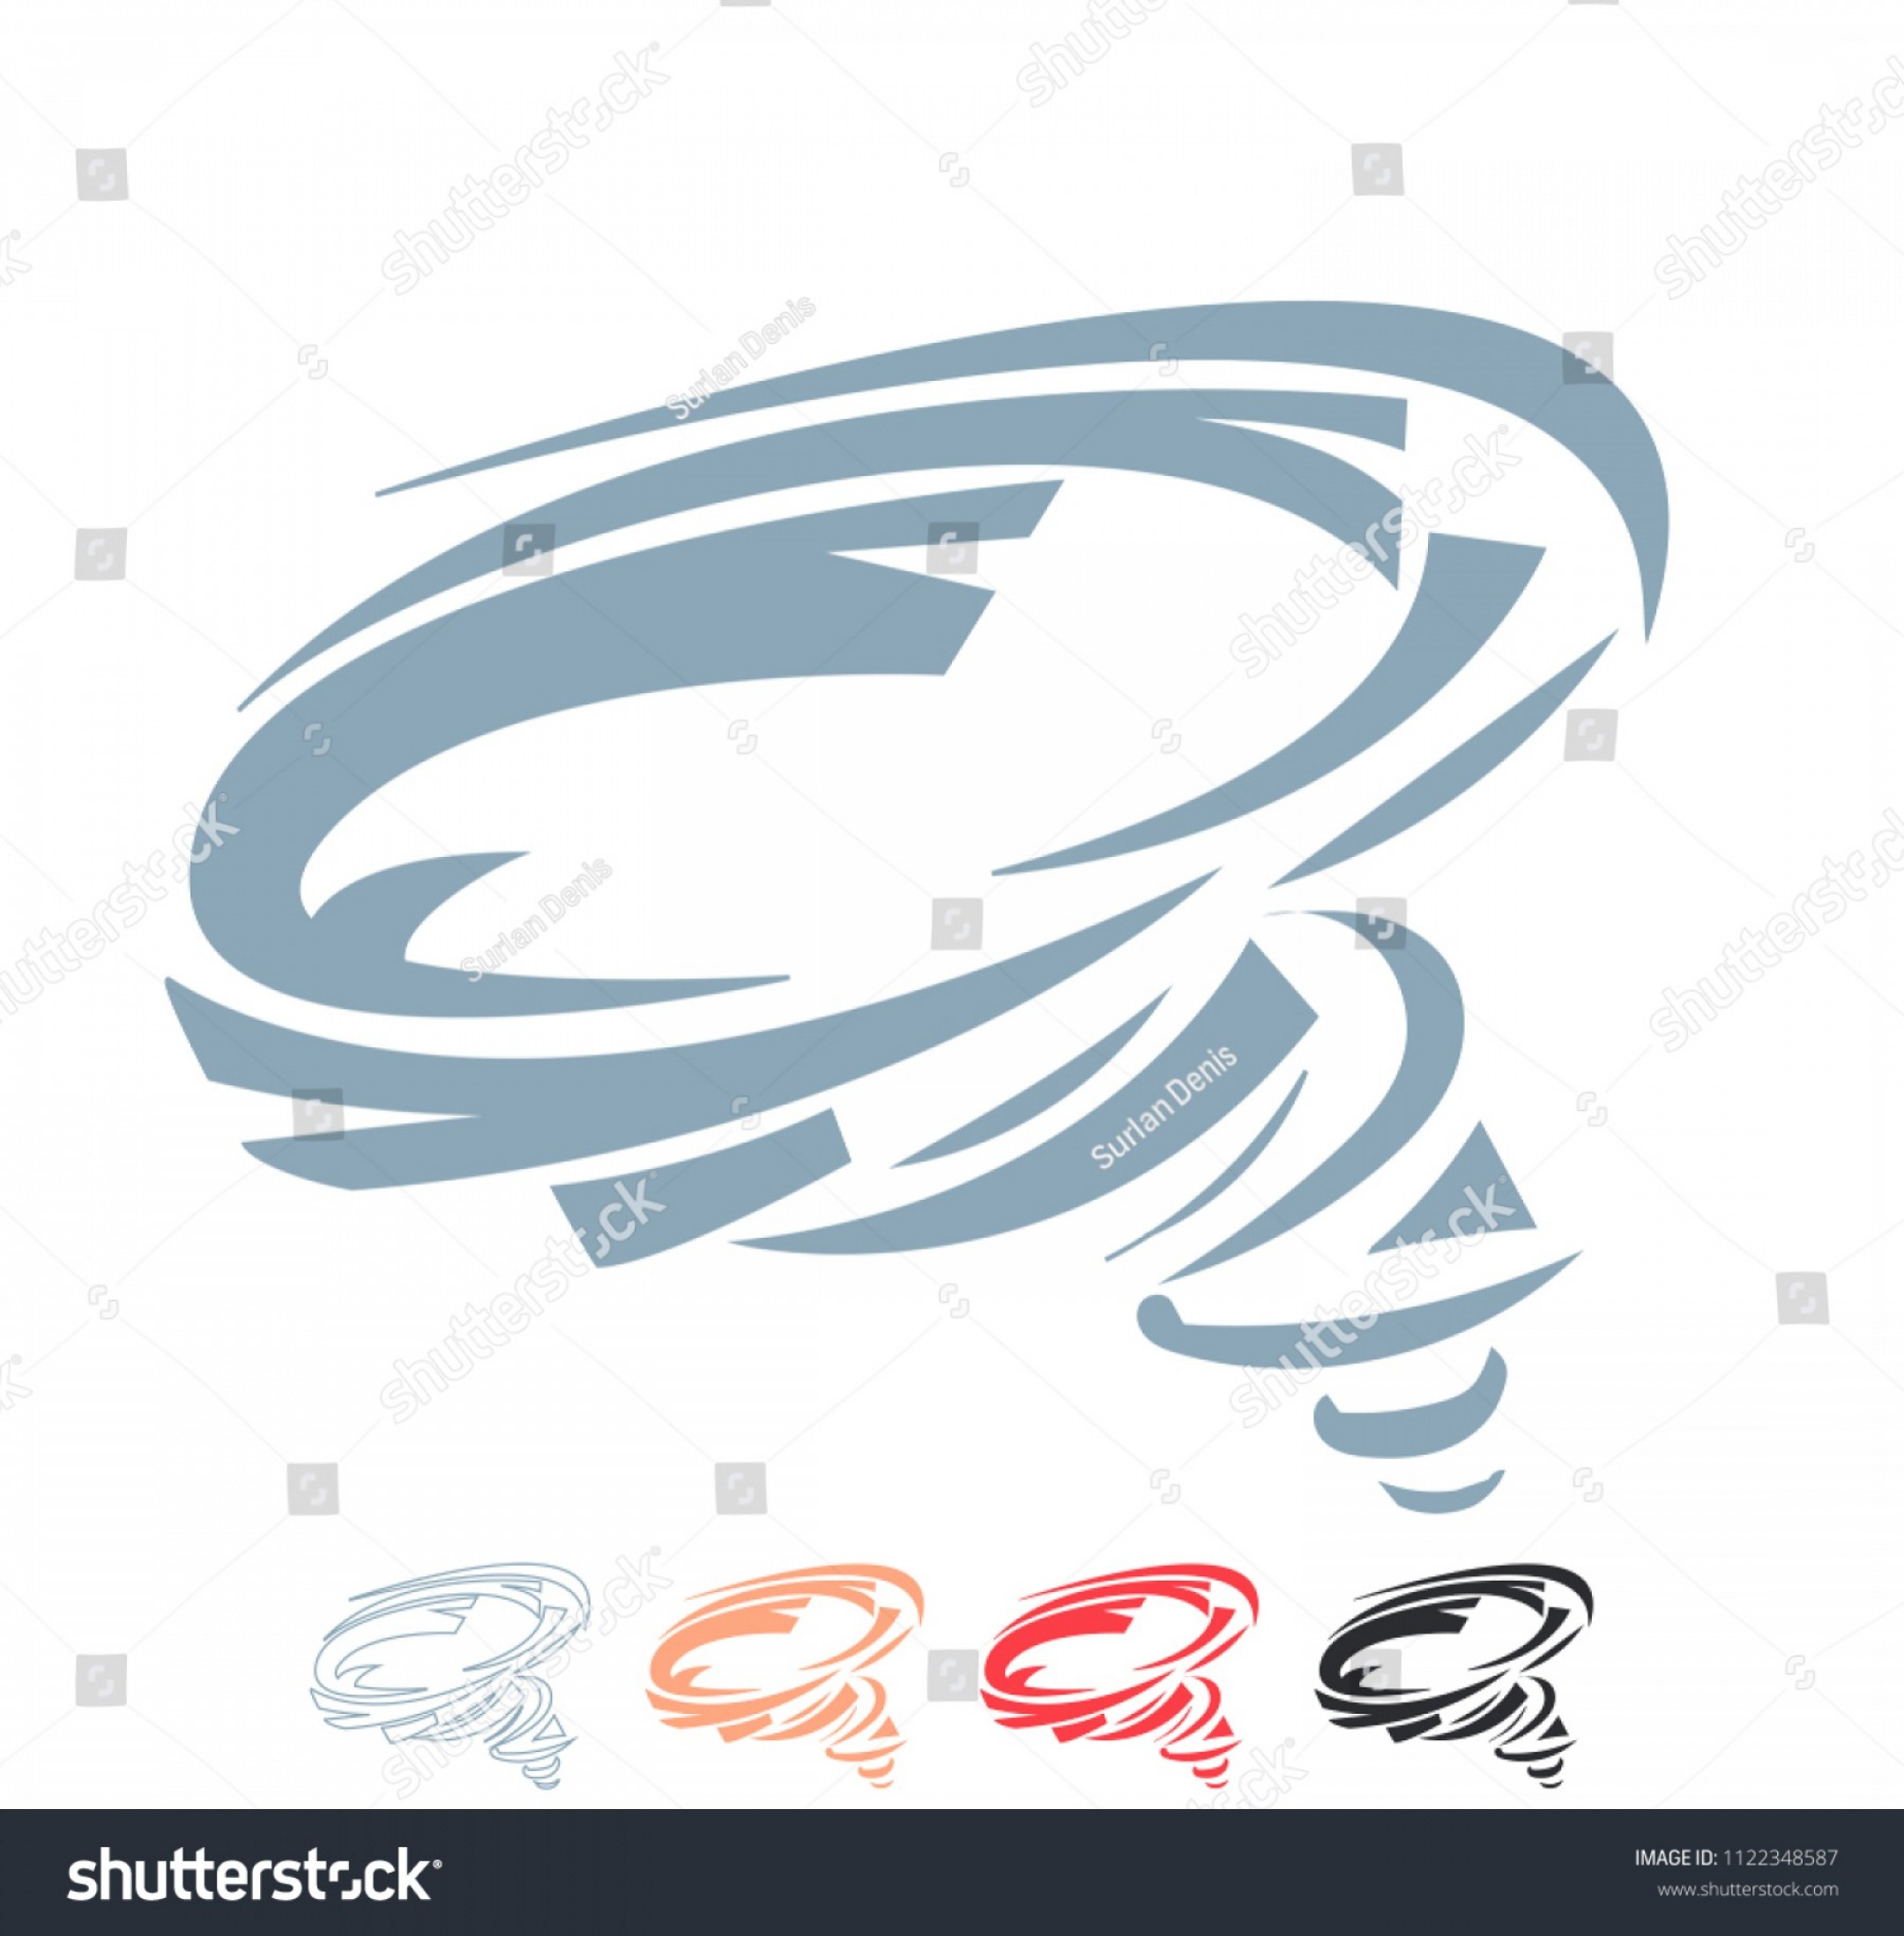 Vector Swoosh Simple Two Line: Vector Simple Wind Spin Spiral Vortex